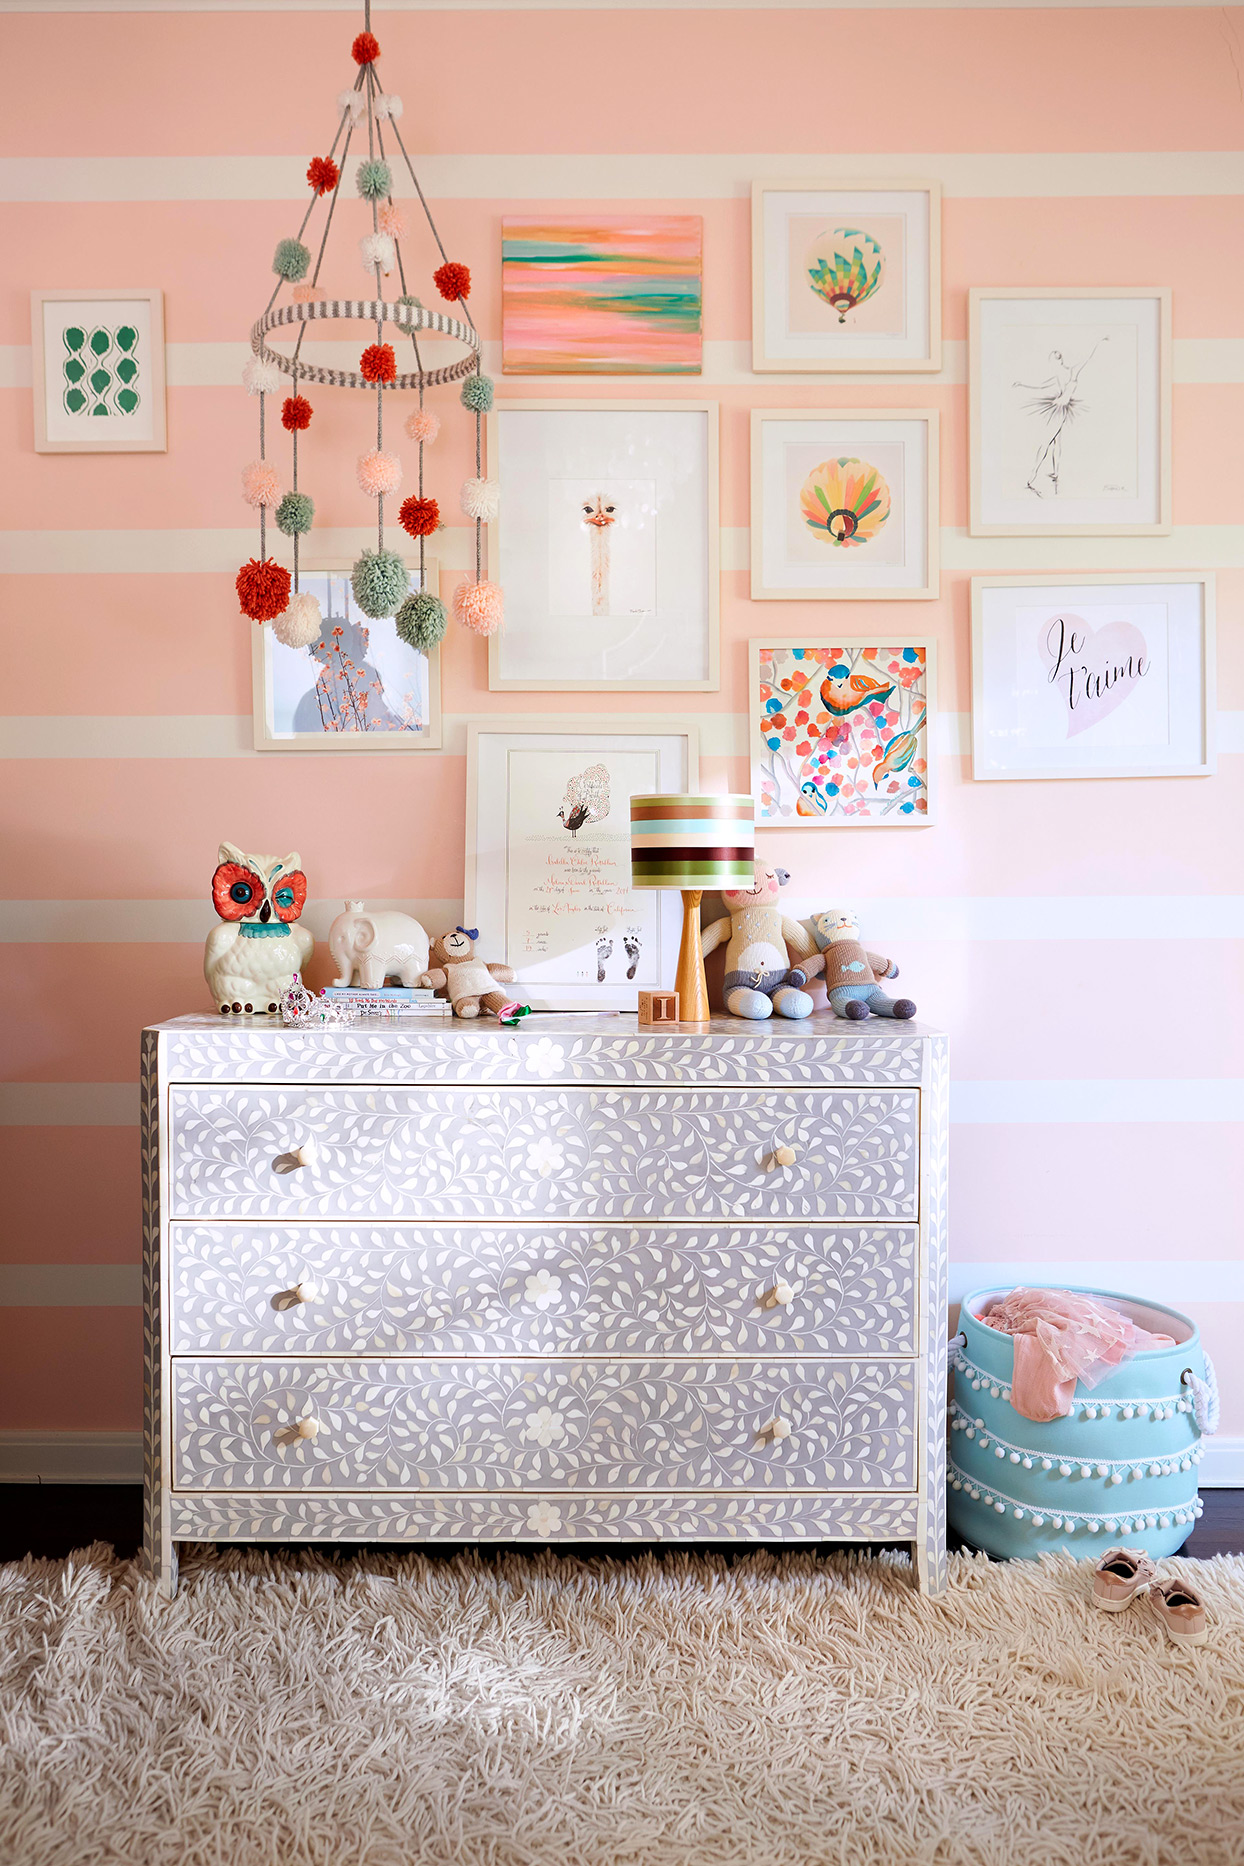 girls bedroom with painted dresser, framed artwork on wall and pink striped walls